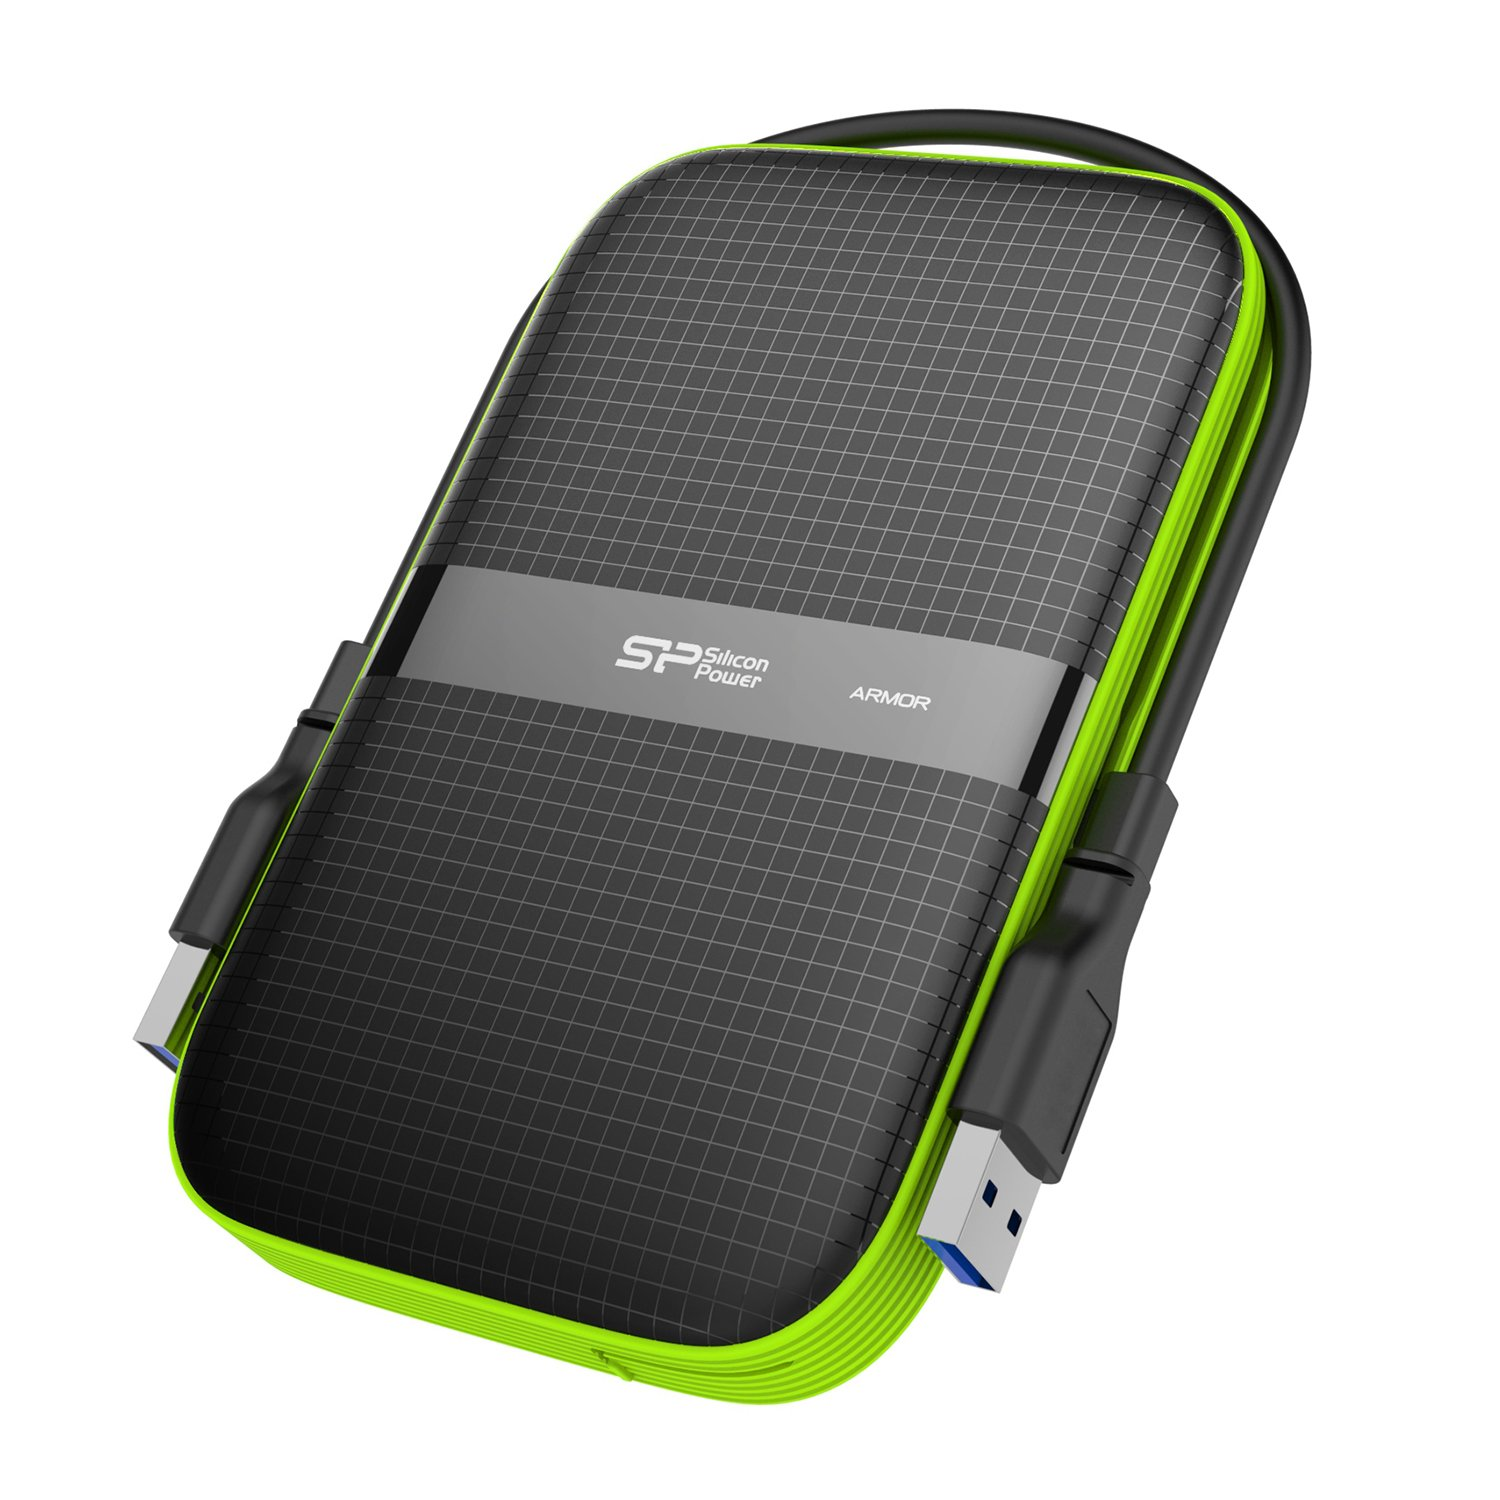 FBE-SU010TBPHDA60S3KFE Silicon Power 1 TB External Portable Hard Drive Rugged Armor A60 Shockproof Water-Resistant 2.5 Inch USB 3.0 Military Grade Mil-Std-810G /& IPX4 Black